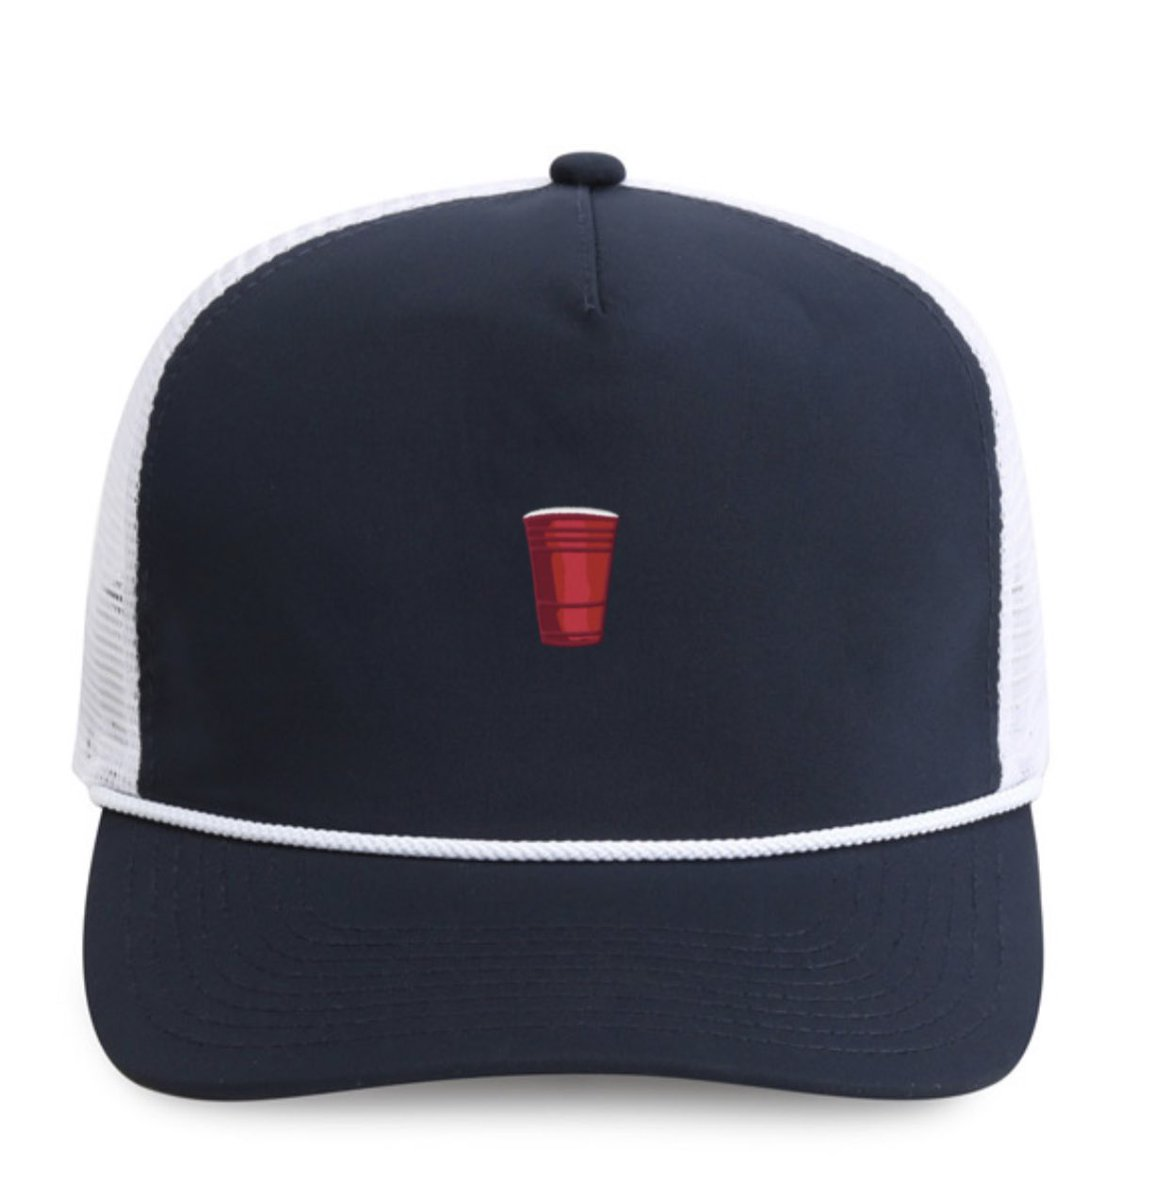 Aight... to get to 12k we don't need many more. If you are a current follower and RT I may send you a #carneycup hat if you're a new follower I may send you a #carneycup lid. #LFG #WTDRP https://t.co/5oMBpIzVPE